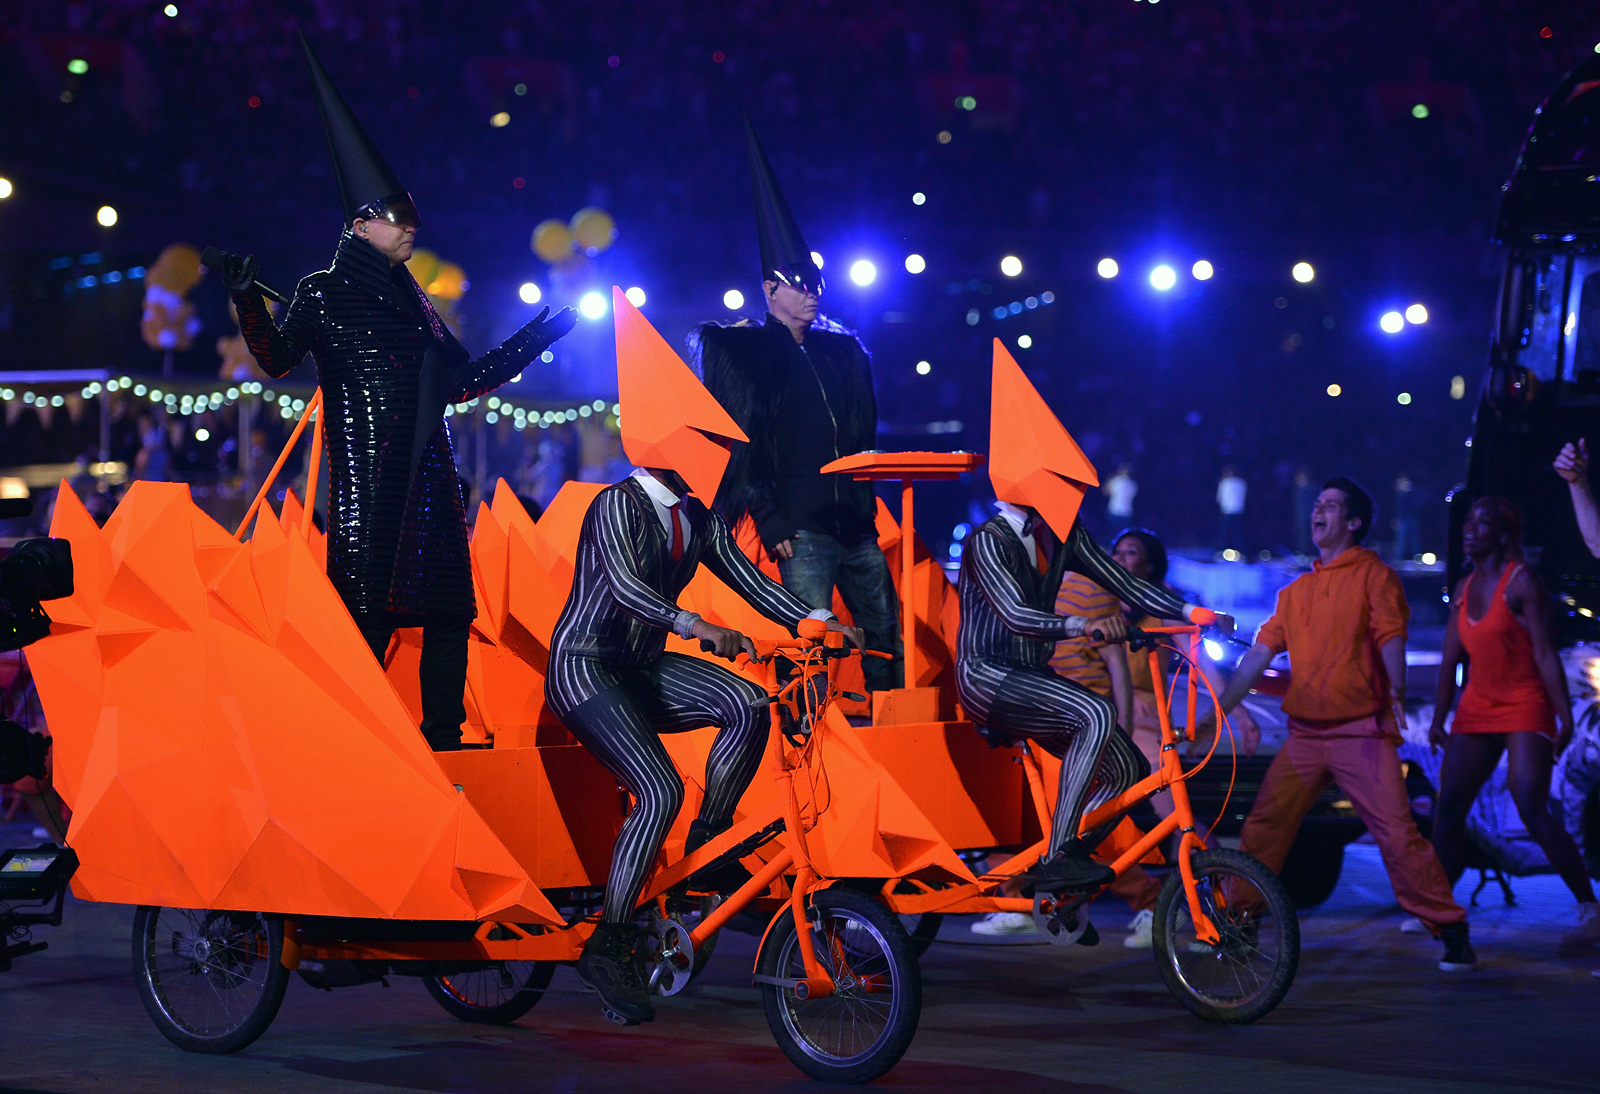 LONDON, ENGLAND - AUGUST 12: Neil Tennant and Chris Lowe and Pet Shop Boys during the Closing Ceremony on Day 16 of the London 2012 Olympic Games at Olympic Stadium on August 12, 2012 in London, England. (Photo by Jeff J Mitchell/Getty Images)